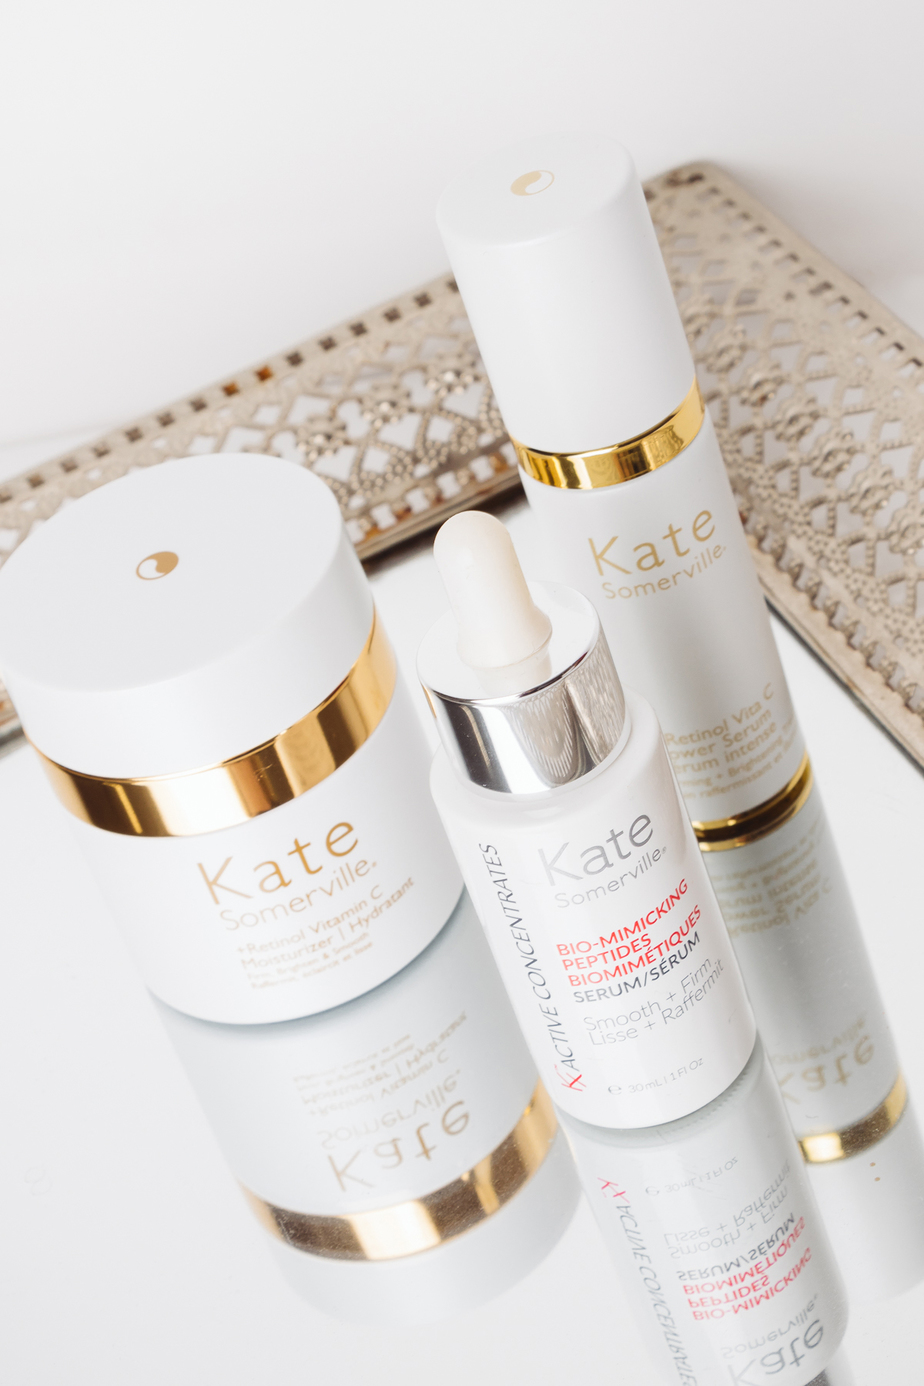 Kate Somerville Retinol Products Best I've Tried | StolenInspiration.com NZ Fashion Blog